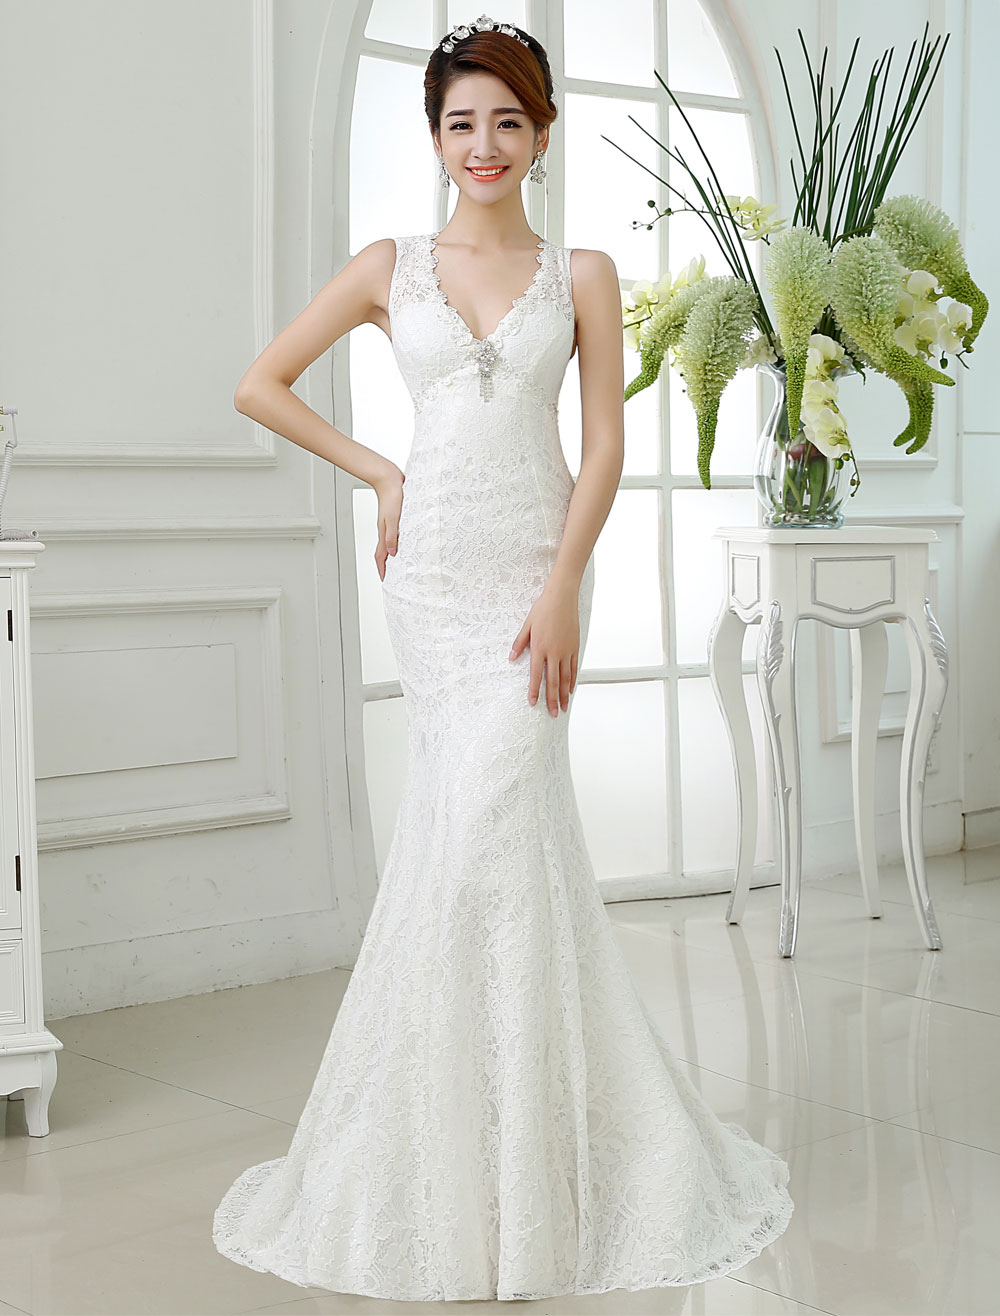 Buy Mermaid Wedding Dresses Lace V Neck Ivory Bridal Dress Backless Sleeveless Rhinestones Beading Wedding Gown With Train for $131.99 in Milanoo store